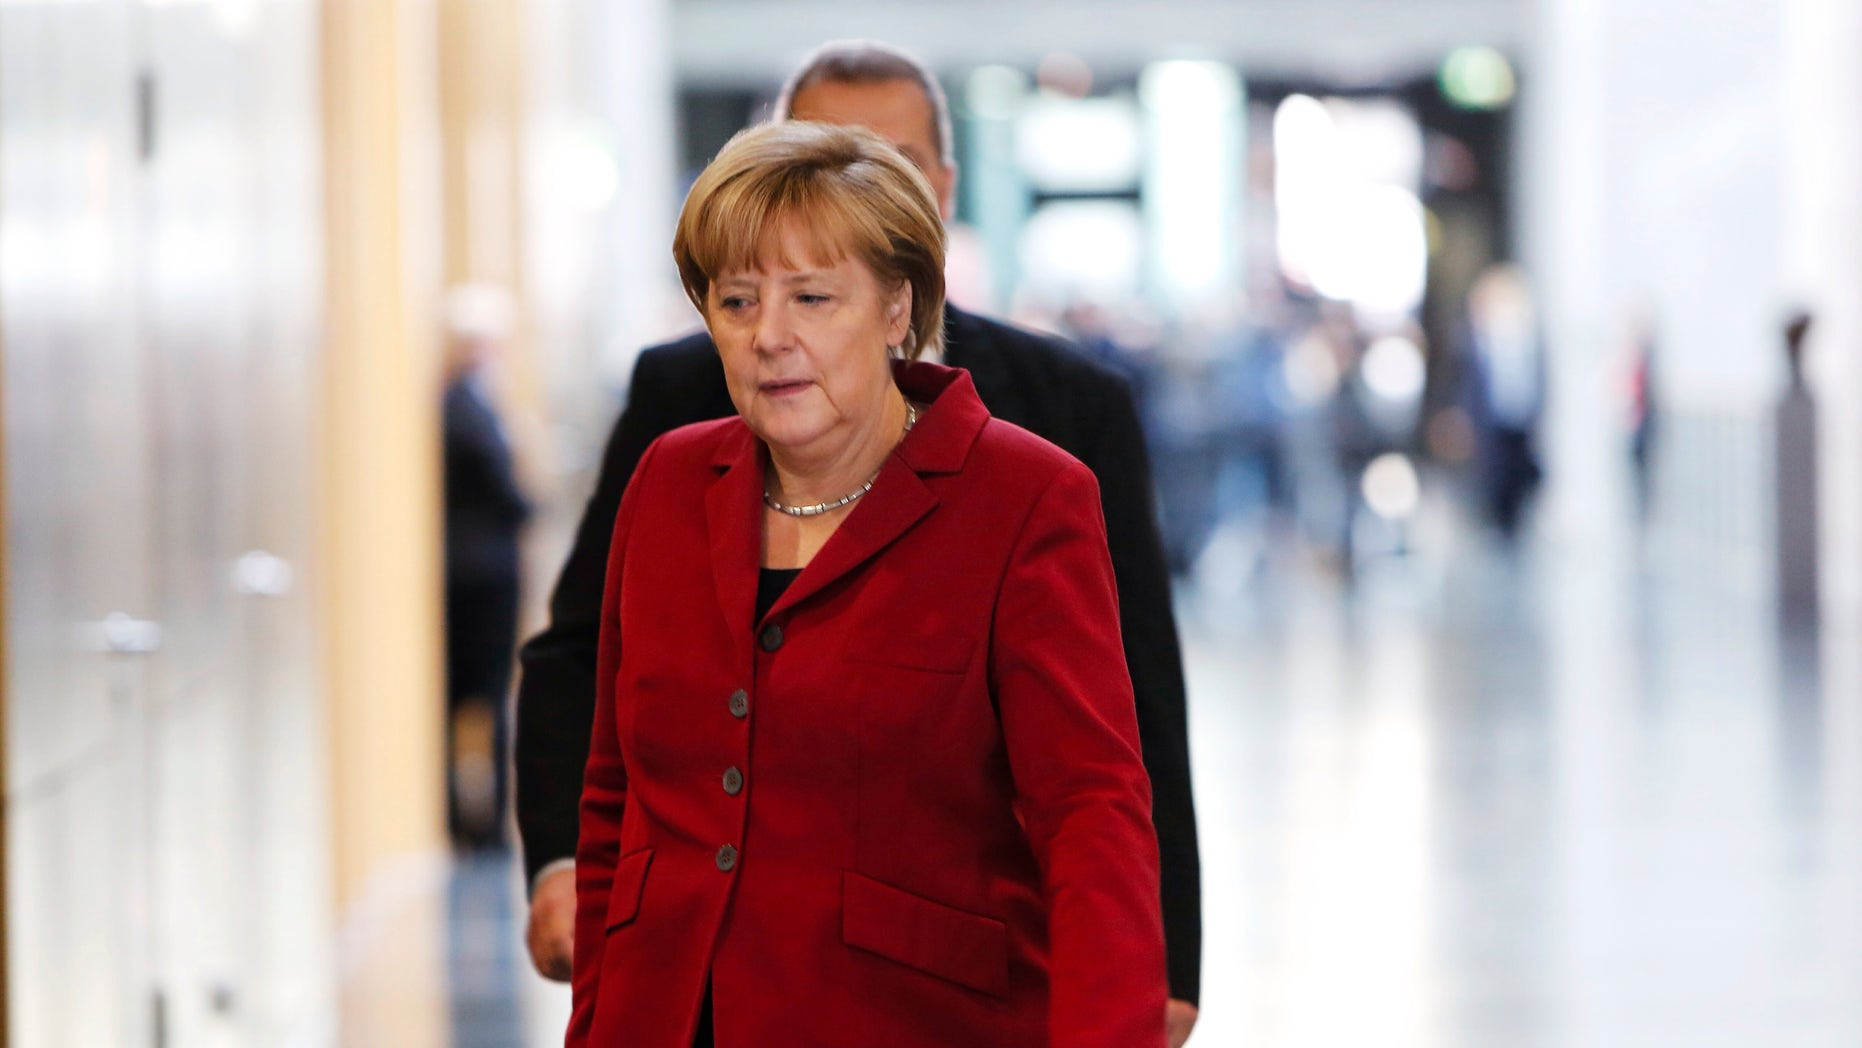 German Chancellor and chairwoman of the Christian Democrats, CDU, Angela Merkel arrives for a meeting with the Christian parties delegation prior to exploratory talks on a coalition with the Social Democratic Party, SPD, in Berlin, Germany, Thursday, Oct. 17, 2013. Following the national elections on Sept. 22, 2013, Merkel is still in negotiations for a coalition partner for her third term. (AP Photo/Markus Schreiber)